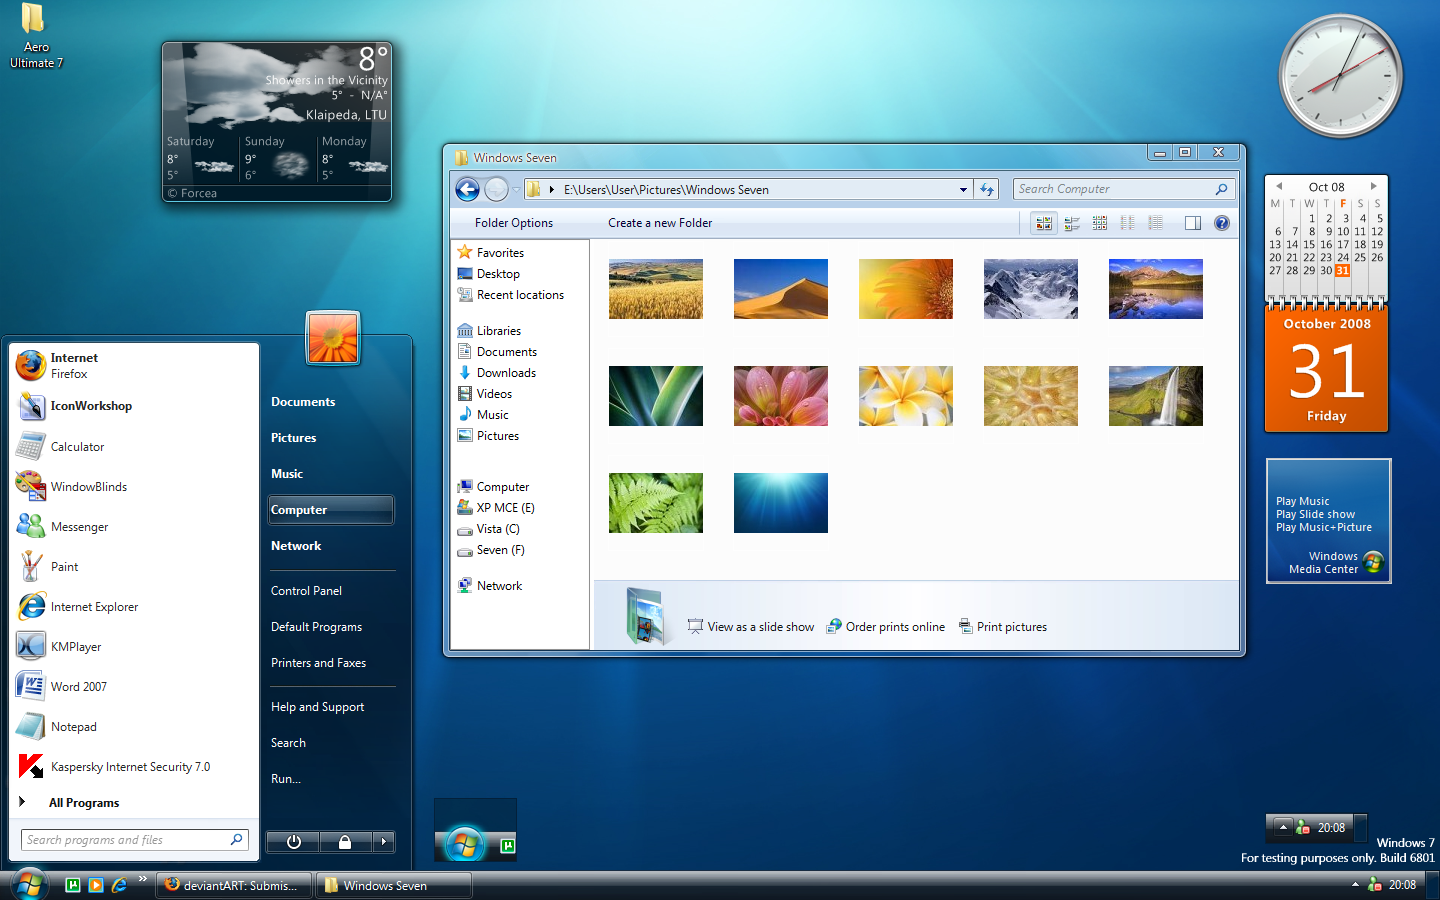 download bootable windows 7 ultimate iso